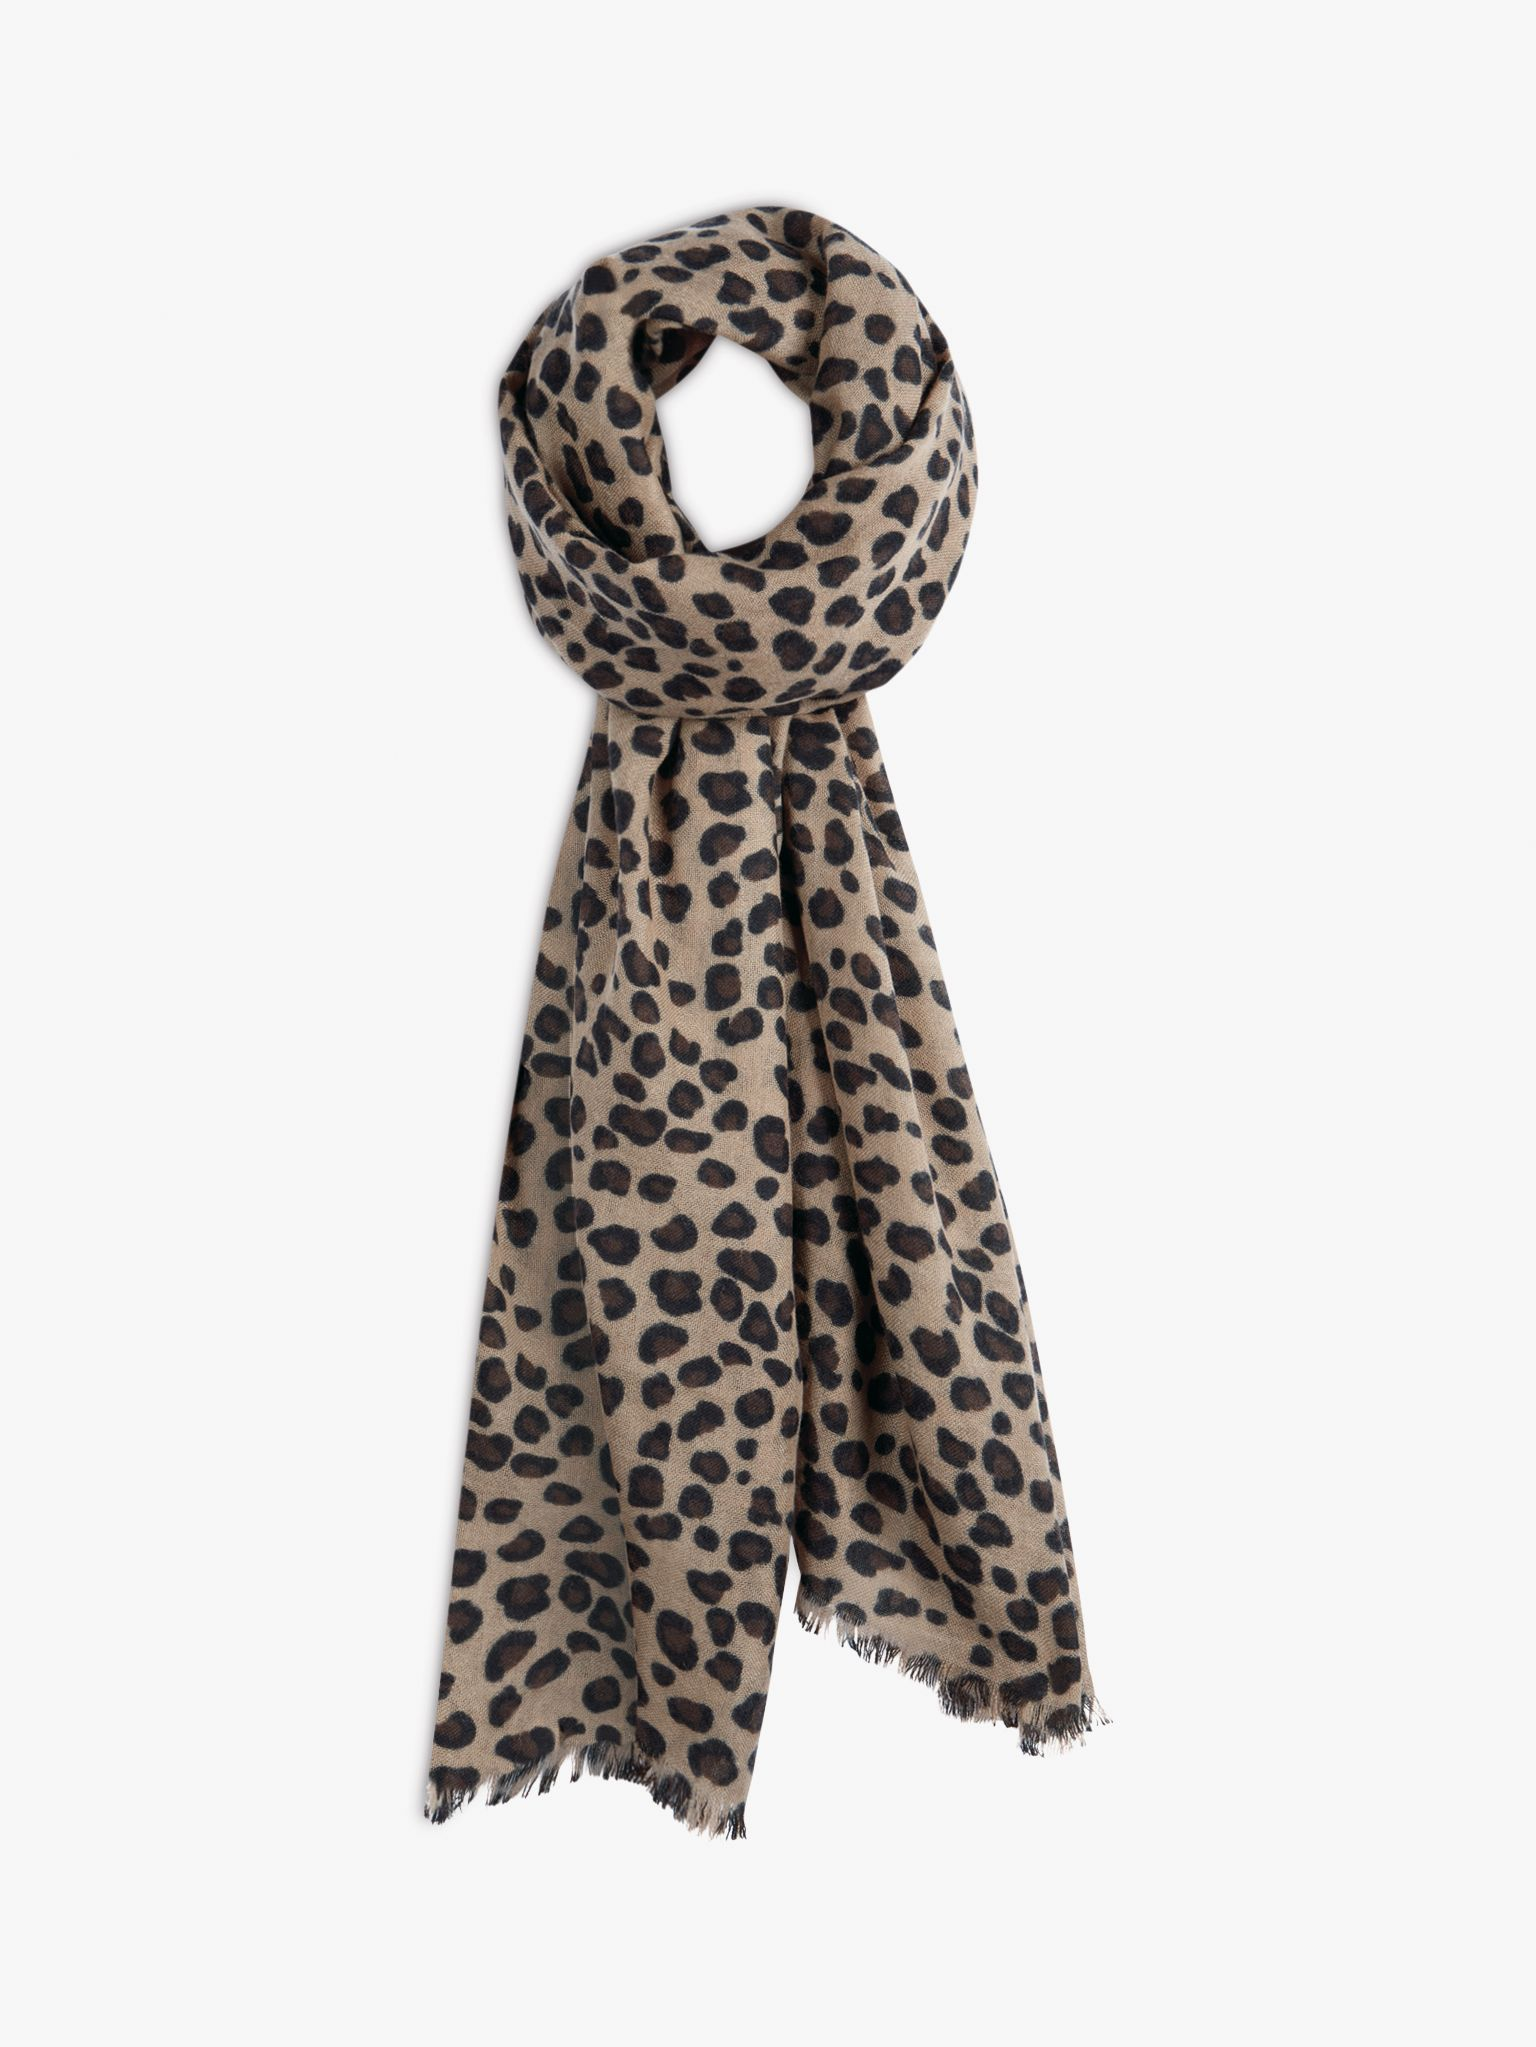 hush Cashmere Leopard Print Scarf, Brown